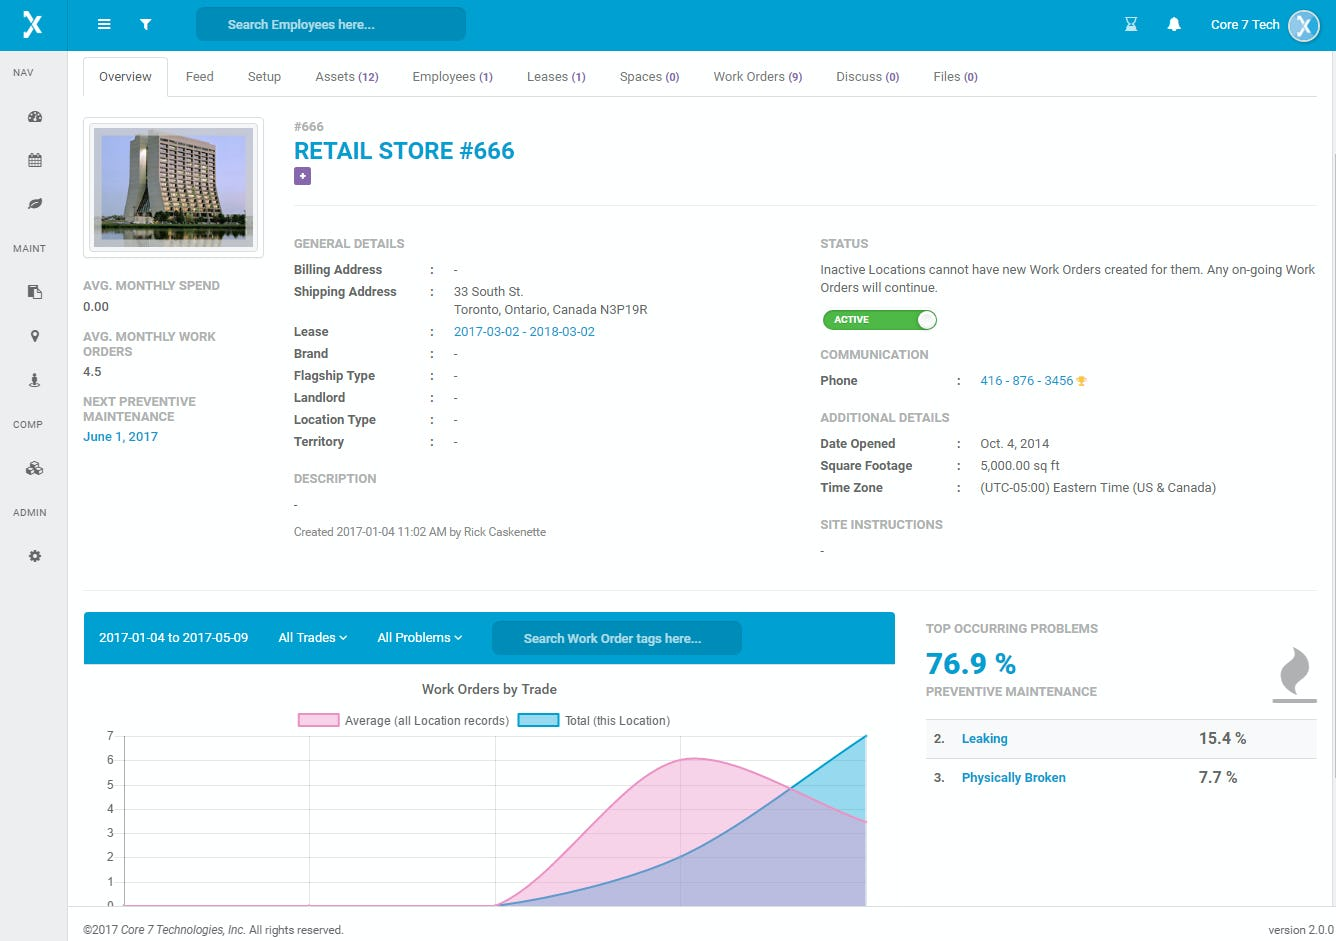 Officetrax Facilities Software - Overview